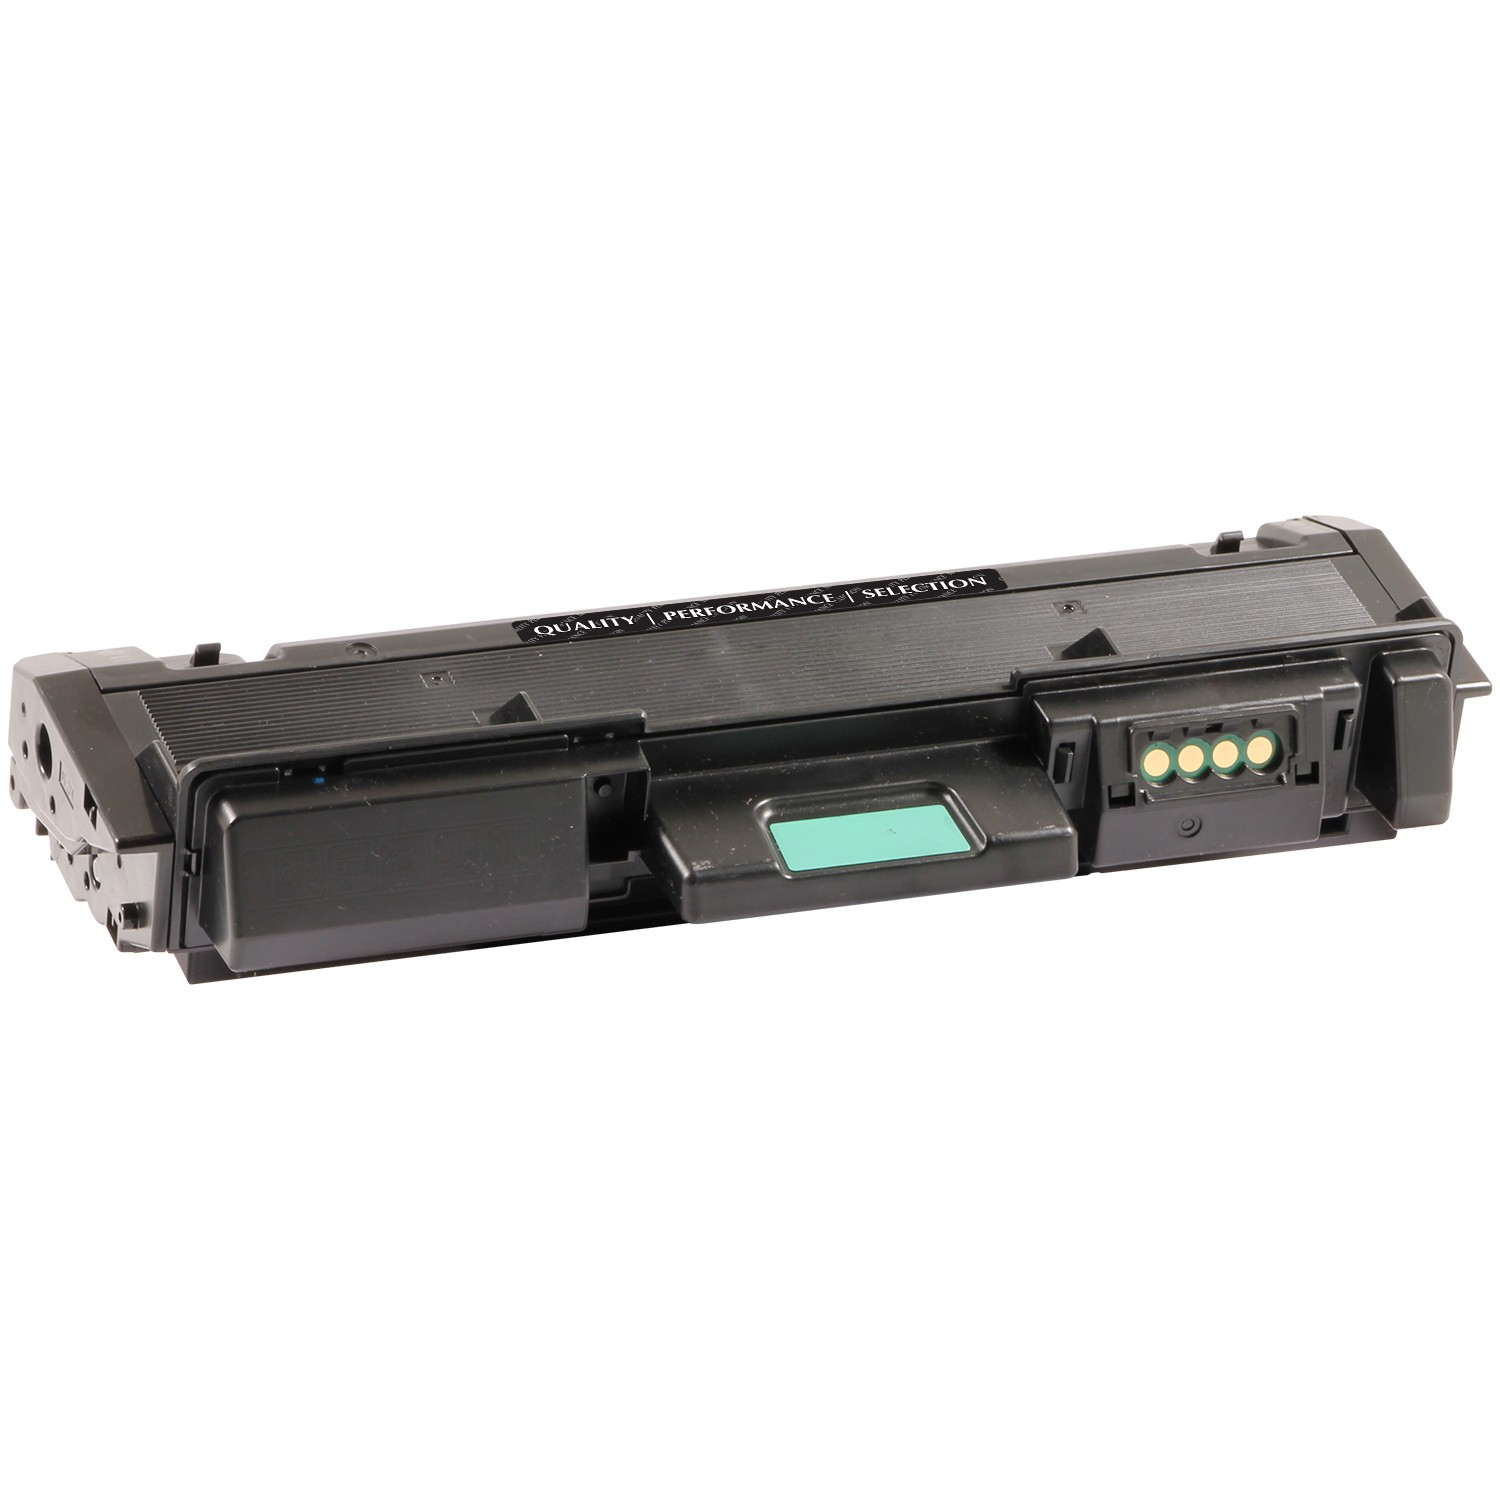 TONER 3000PG YIELD REPLACES SAMSUNG MLT-D116L